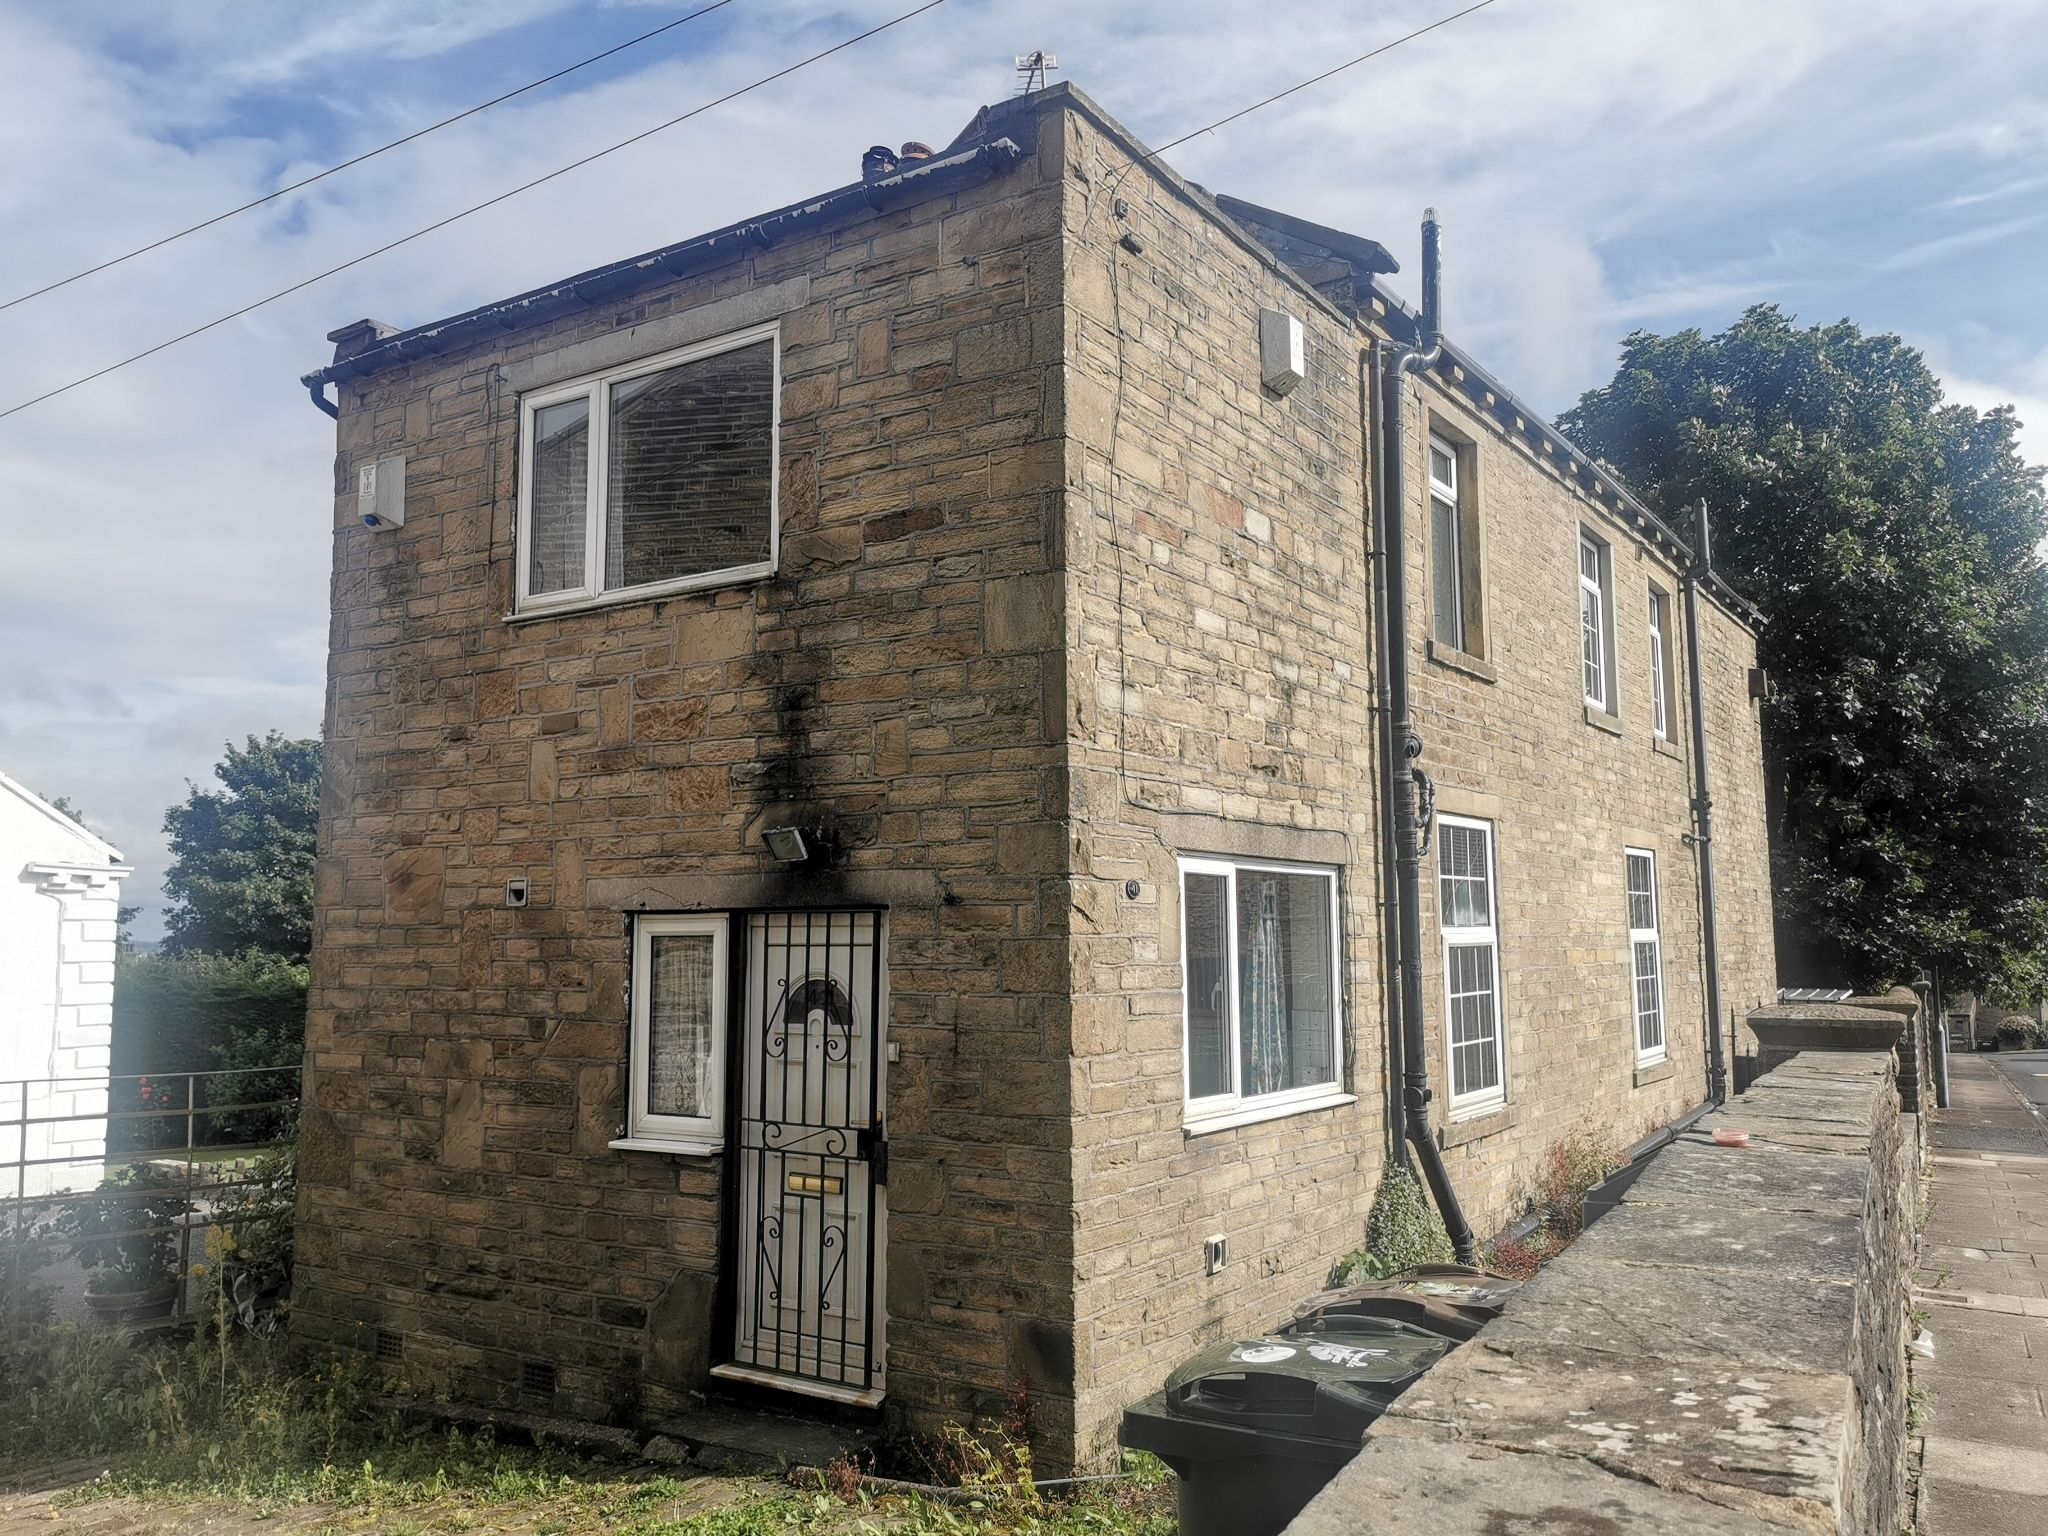 3 bedroom detached house For Sale in Bradford - Photograph 21.